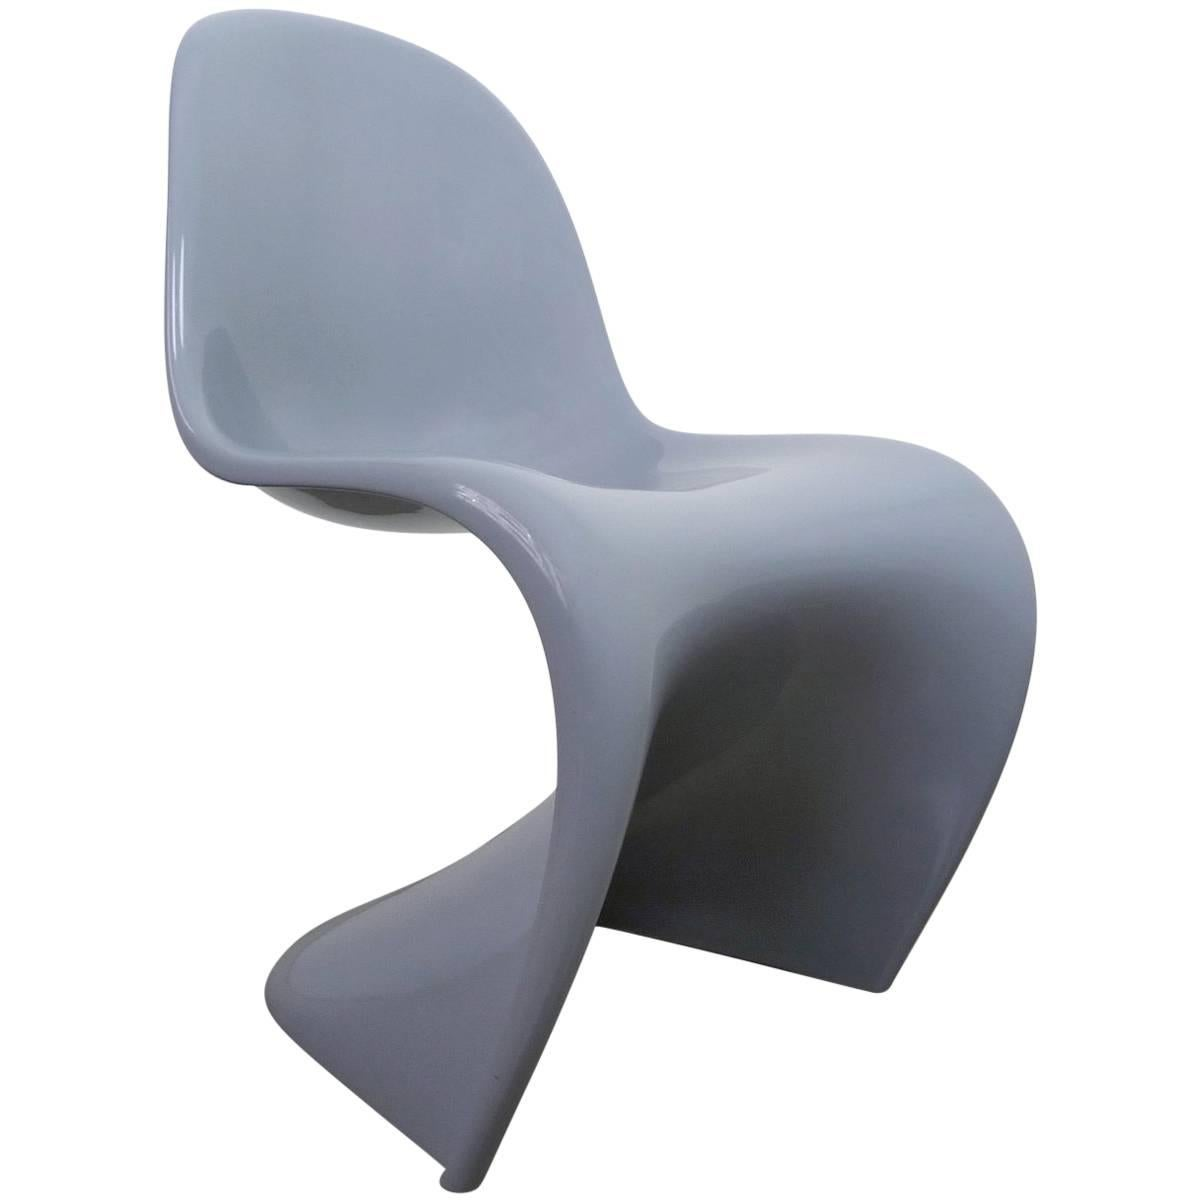 grey panton chair classic by verner panton for vitra germany.